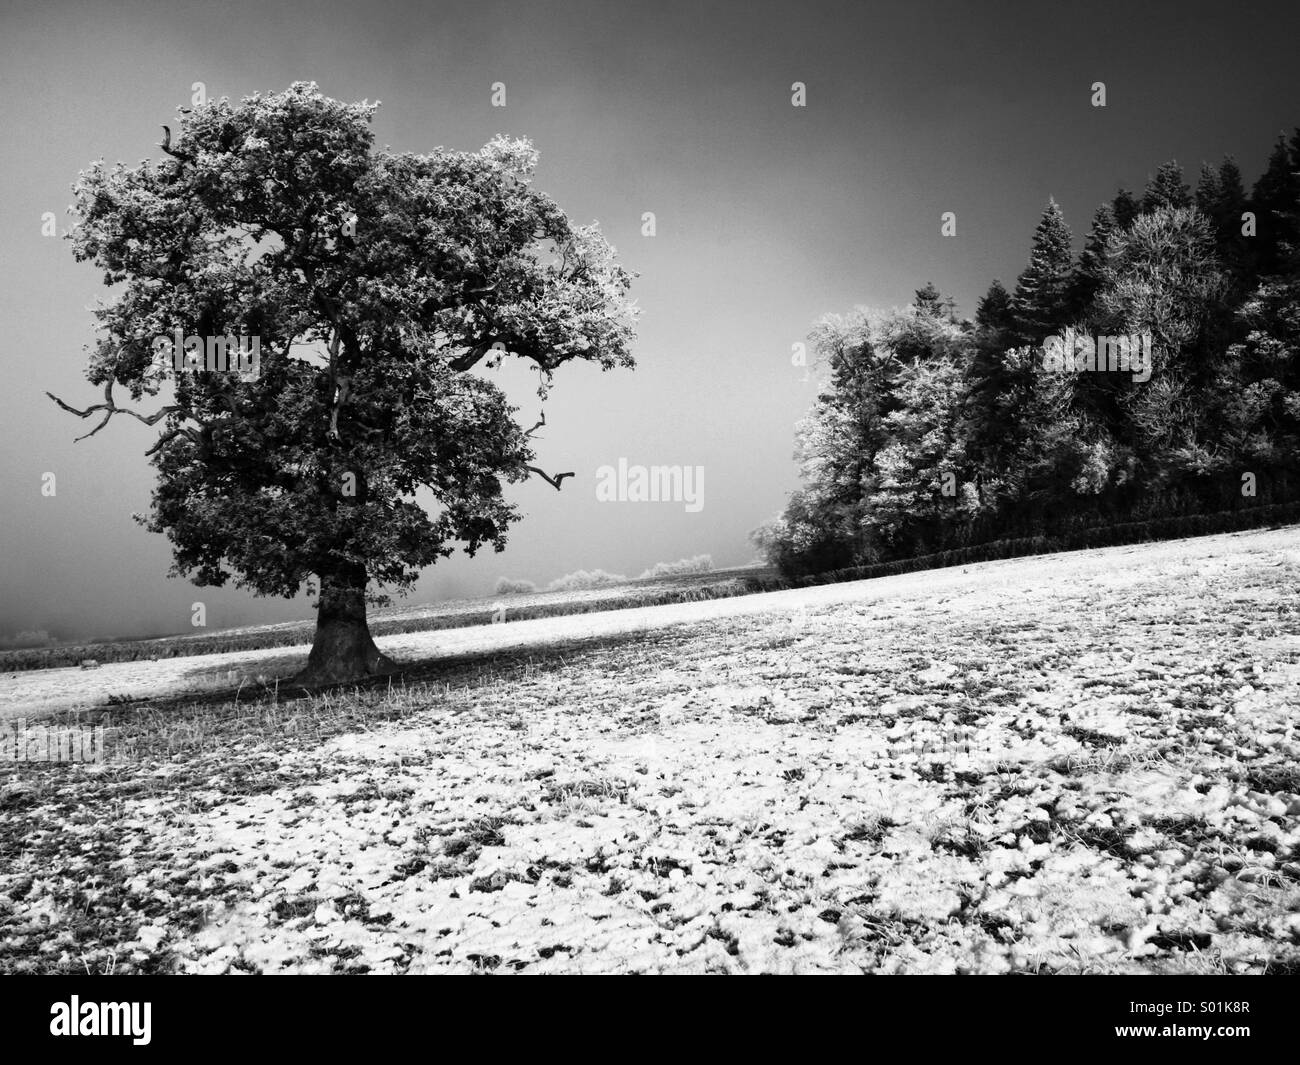 Oak tree in a Winter mist - Stock Image